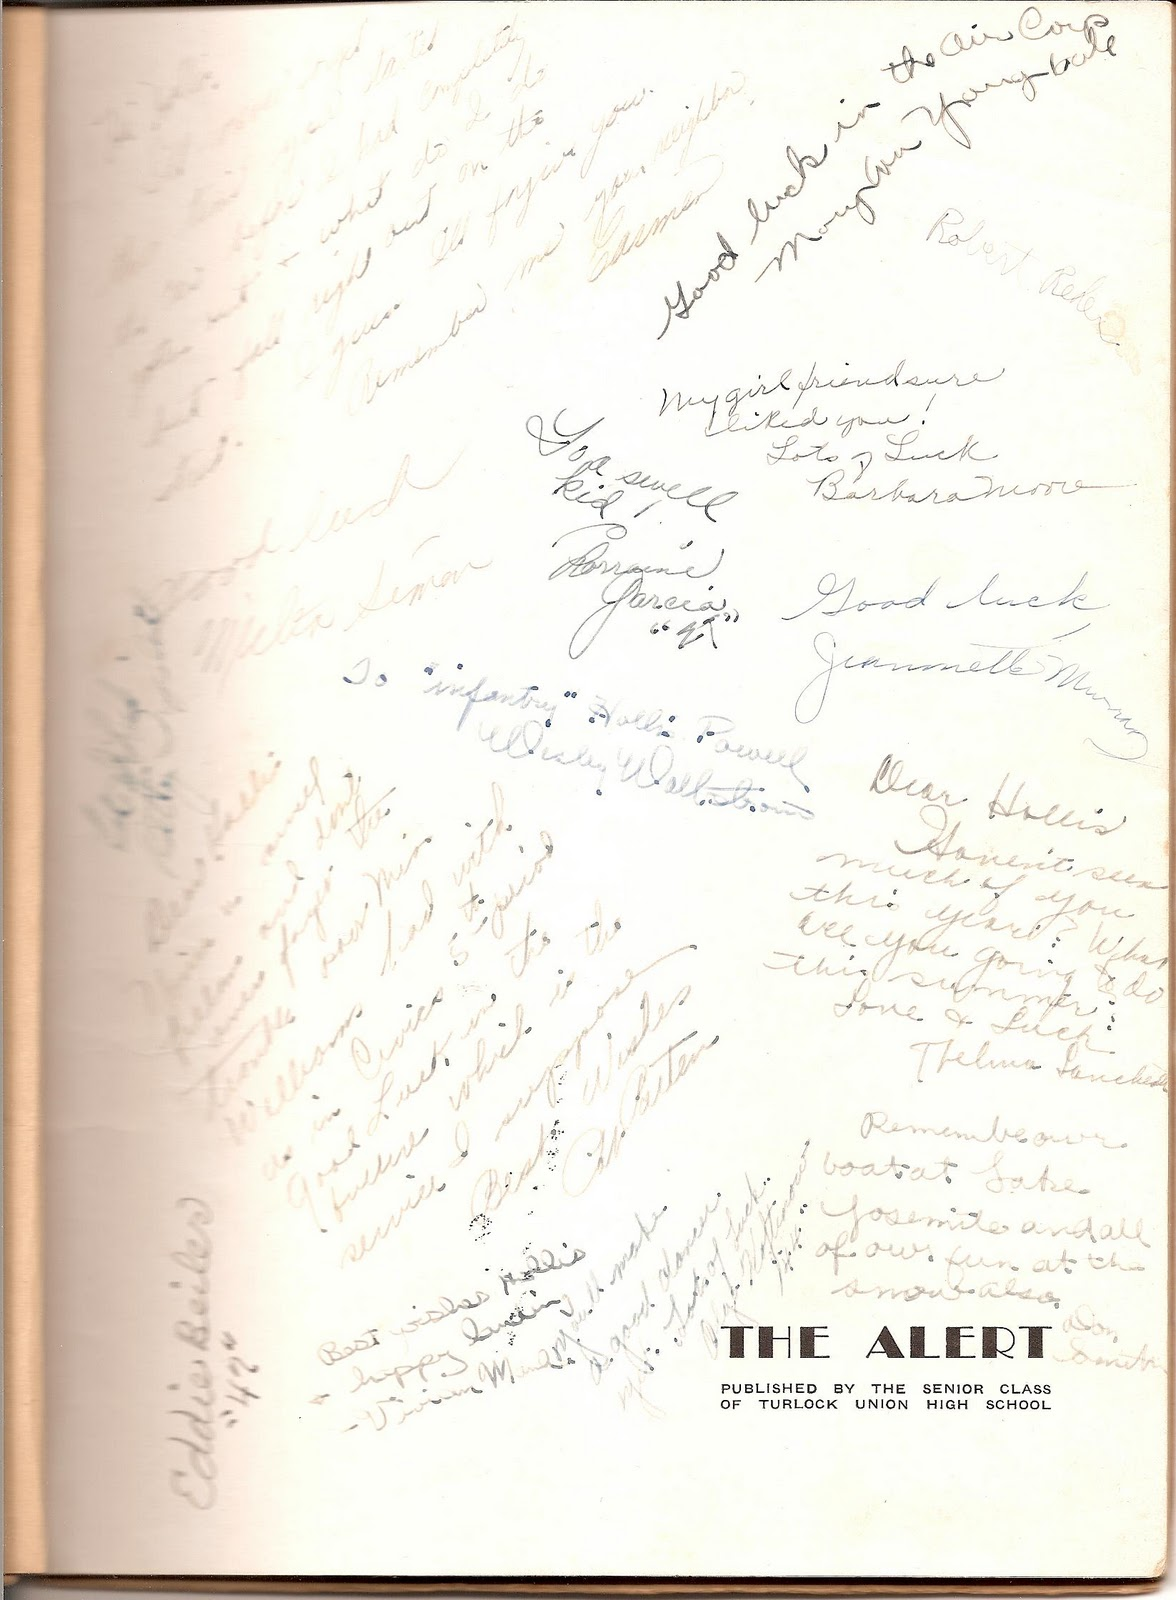 Autograph Page - Bing images